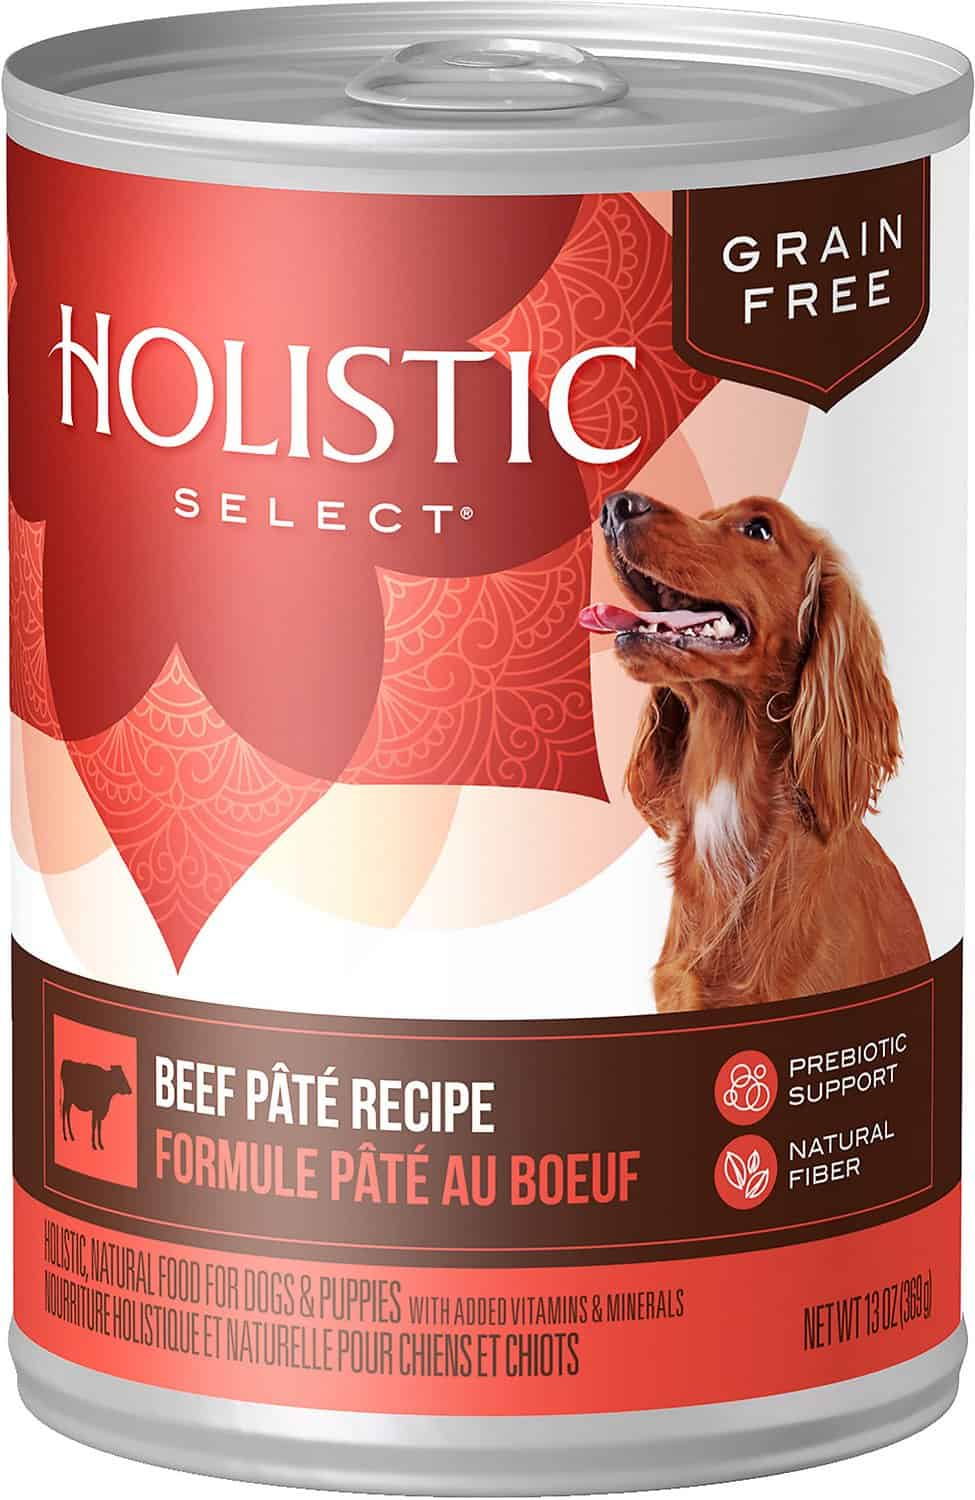 Holistic Select Reviews 2021: Best Holistic Pet Food? 15